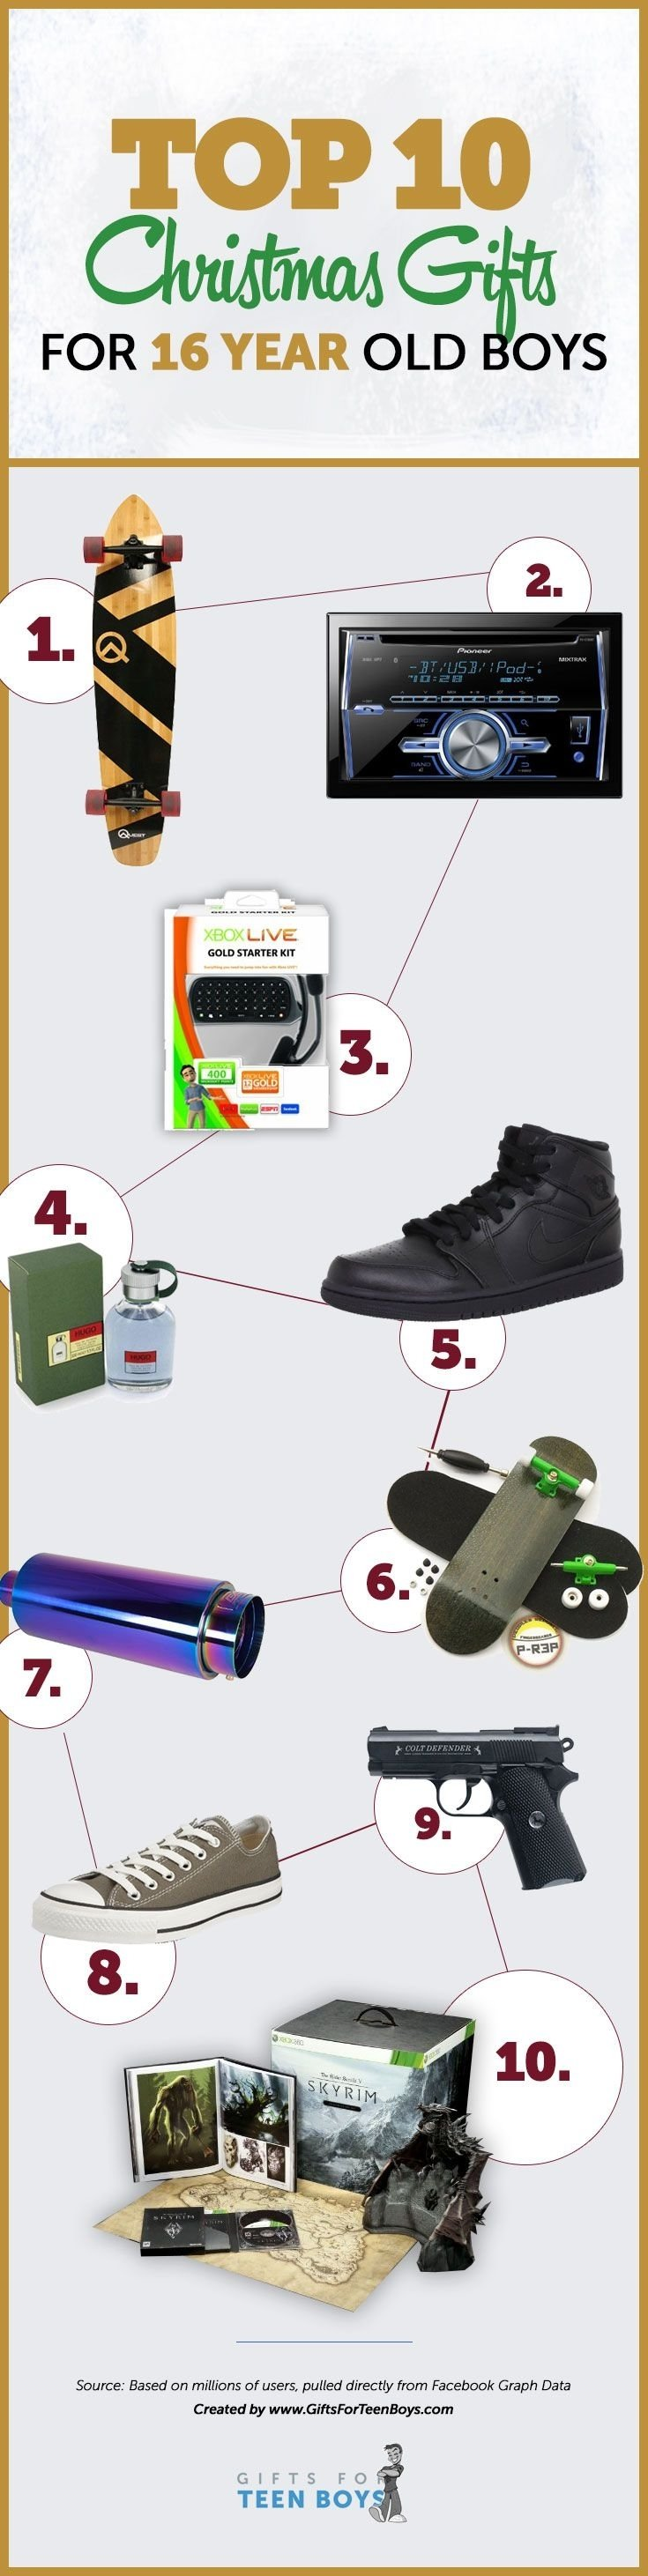 10 Stylish Gift Ideas For A 16 Year Old Boy 13 best christmas gifts 17 yr old boys images on pinterest gifts 2 2020